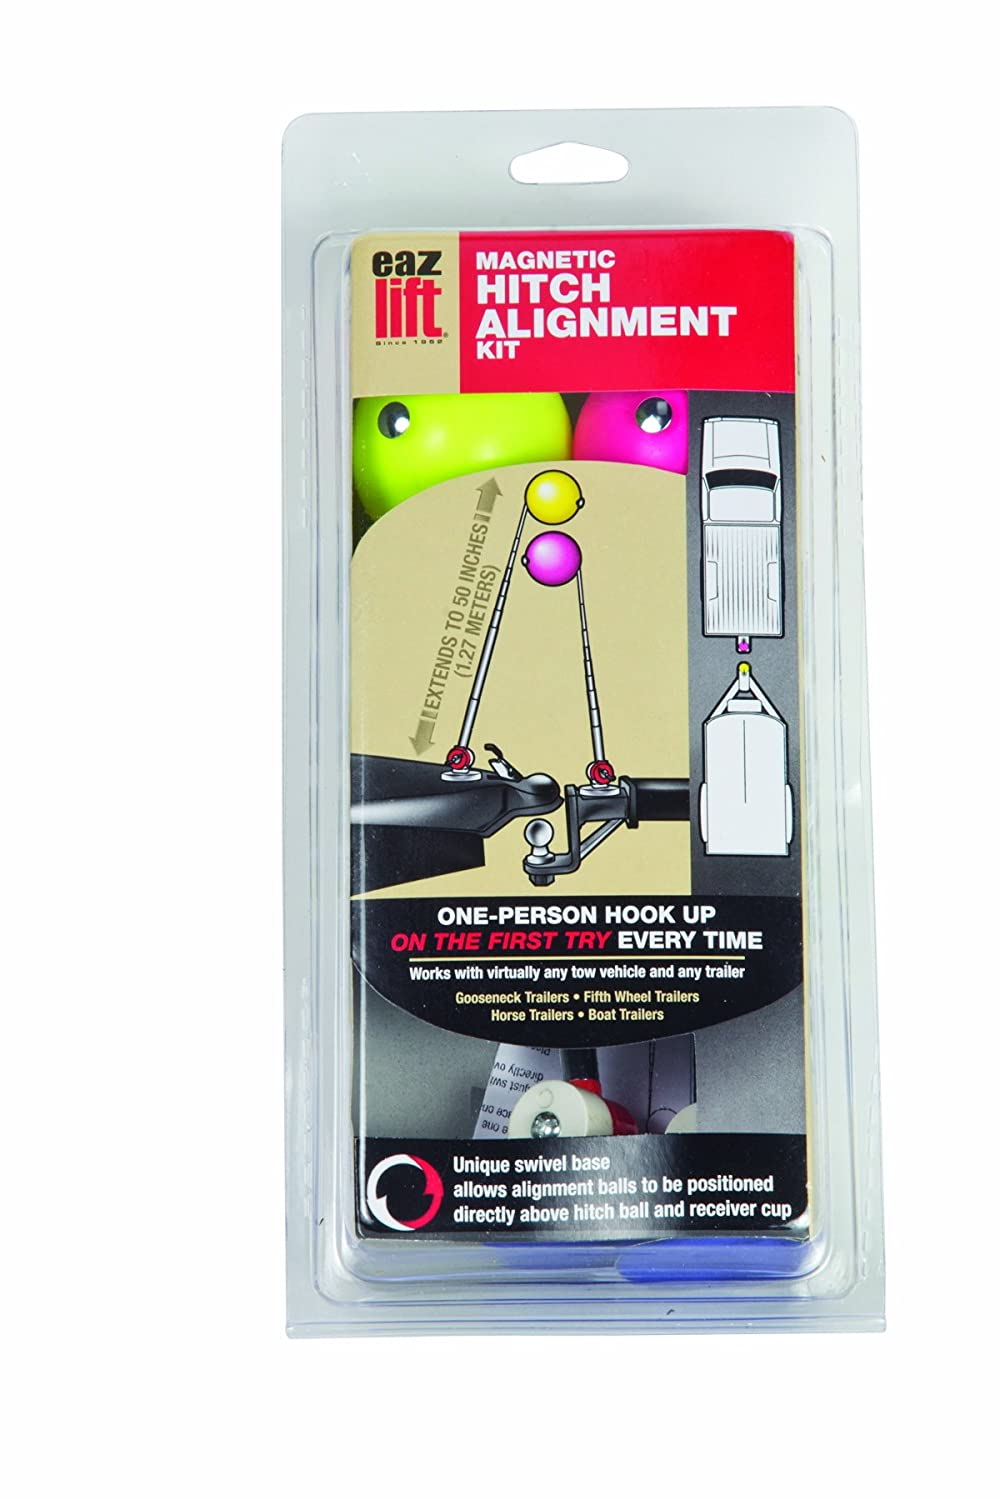 Camco Magnetic Hitch Alignment Kit System Works With Virtually Any Tow Vehicle and Trailer - Helps You Align Your Hitch 44603 Each Guide Extends Up To 50 for Easy Viewing